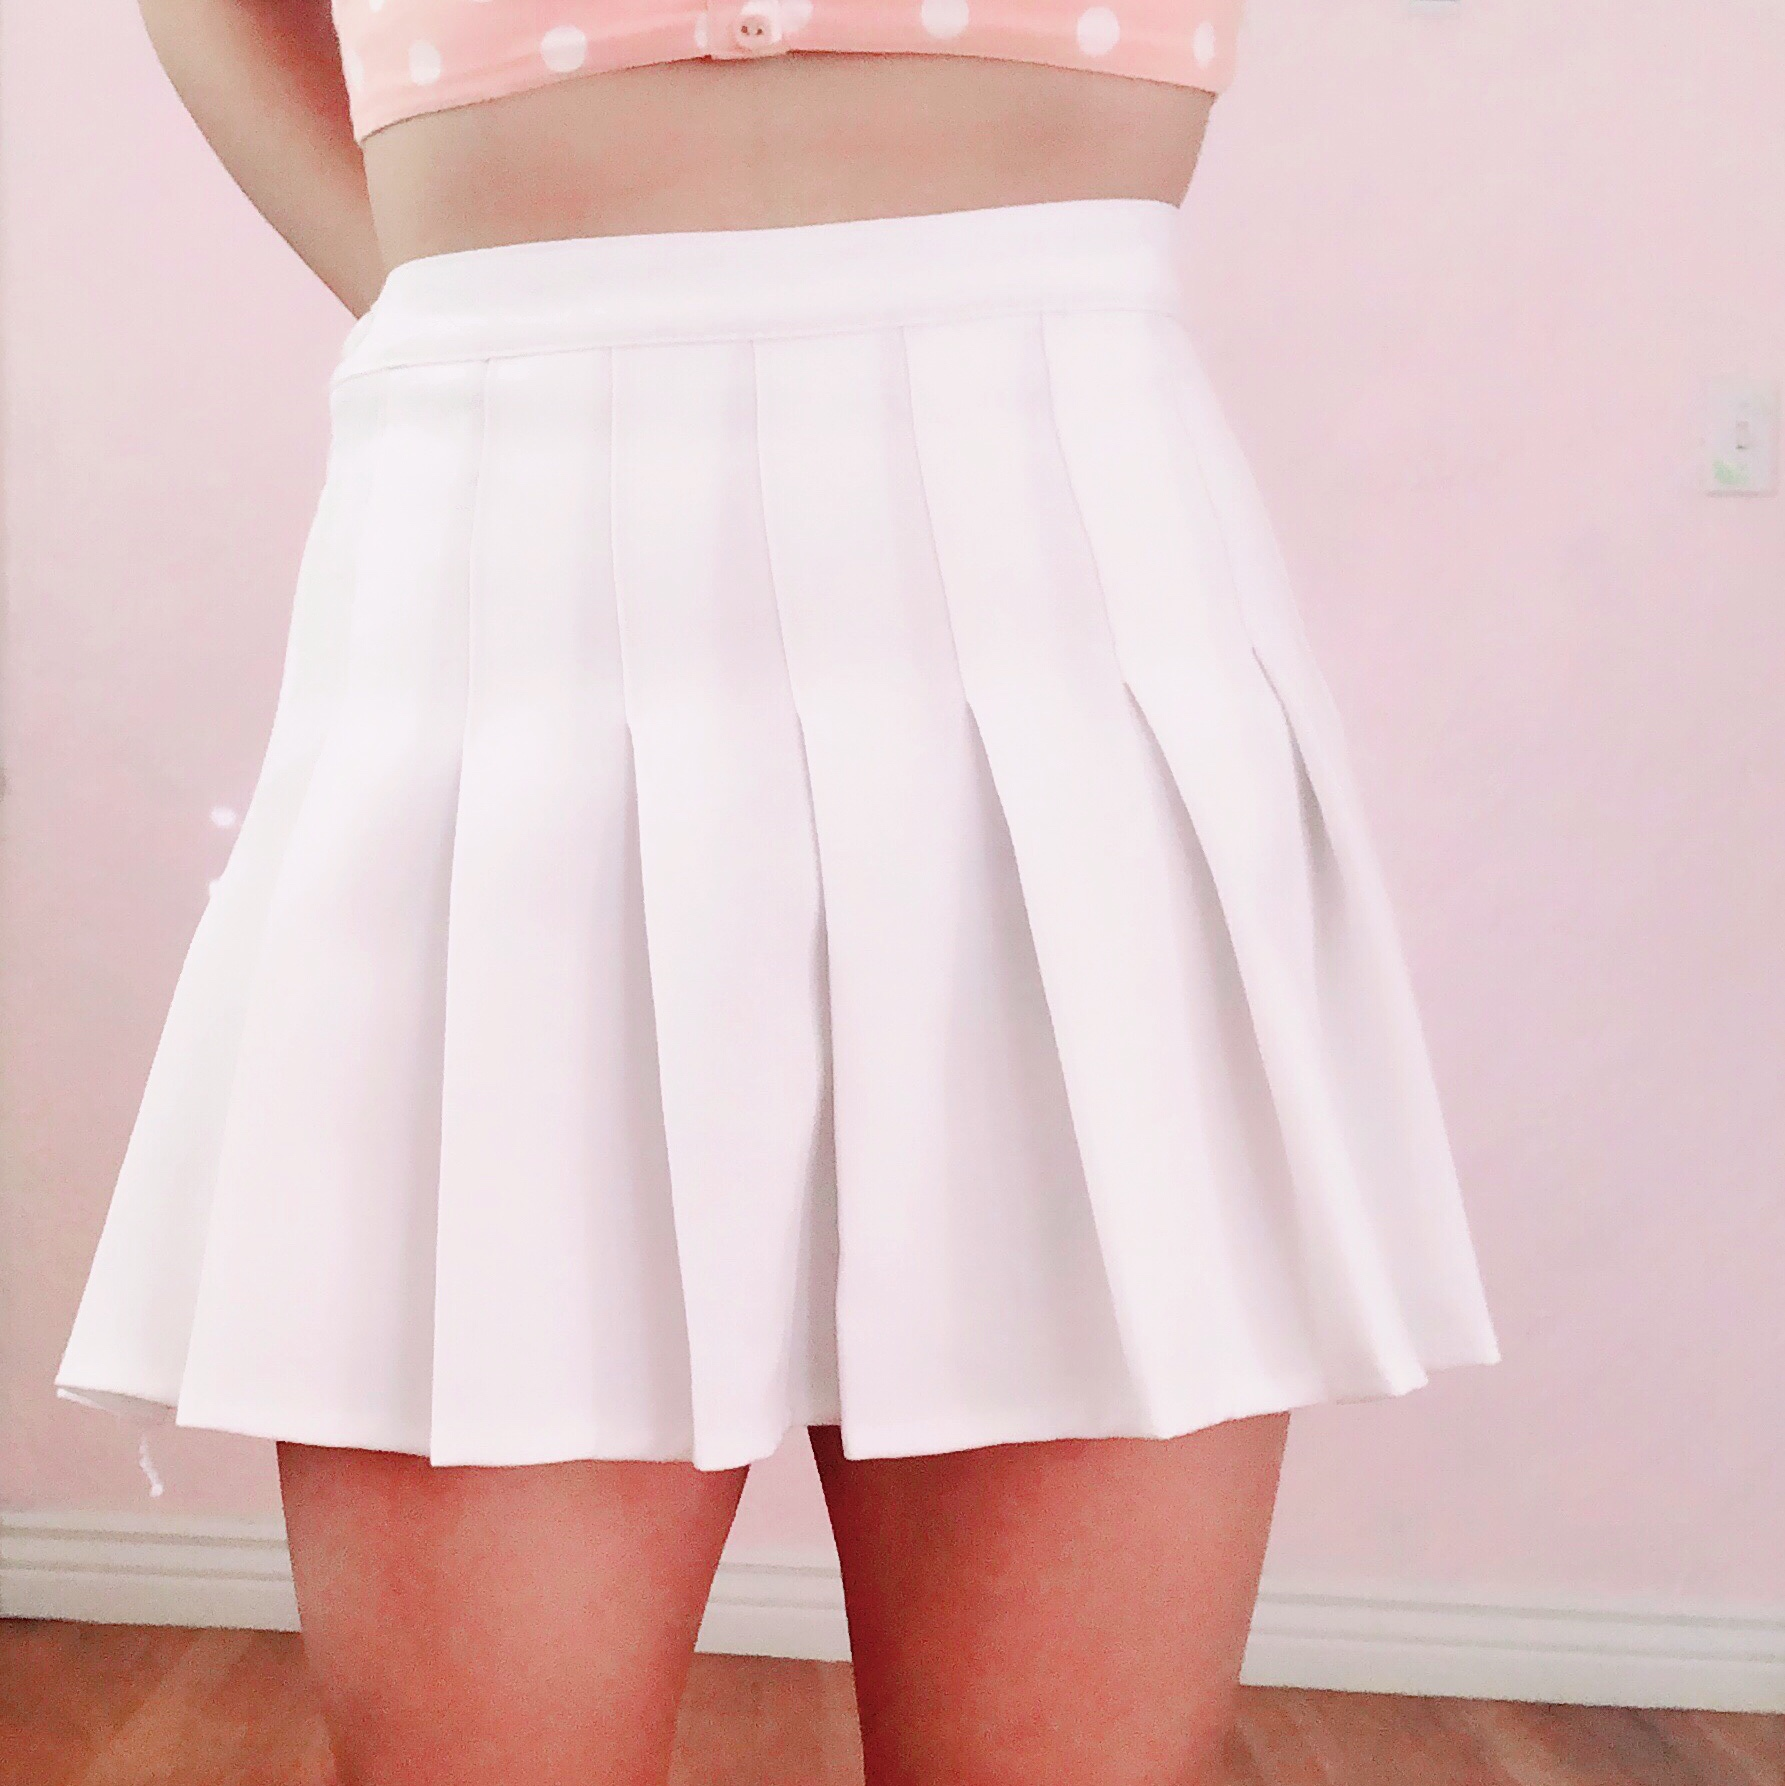 Aesthetic White Tennis Skirt Can Be Light And Cute Depop